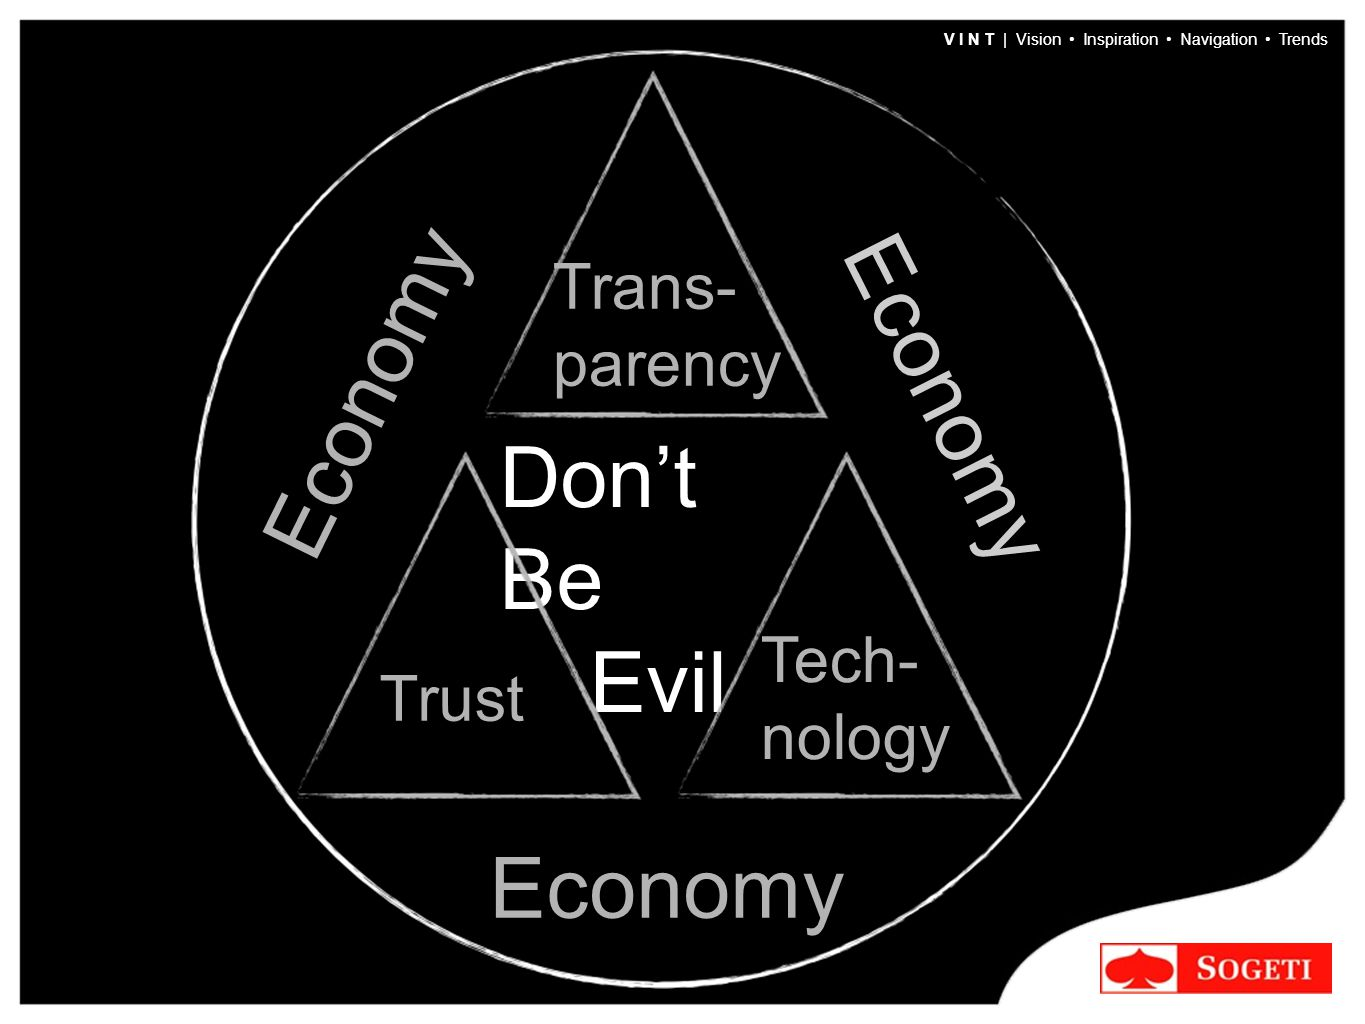 V I N T | Vision Inspiration Navigation Trends Don't Be Evil Trans- parency Tech- nology Trust Economy